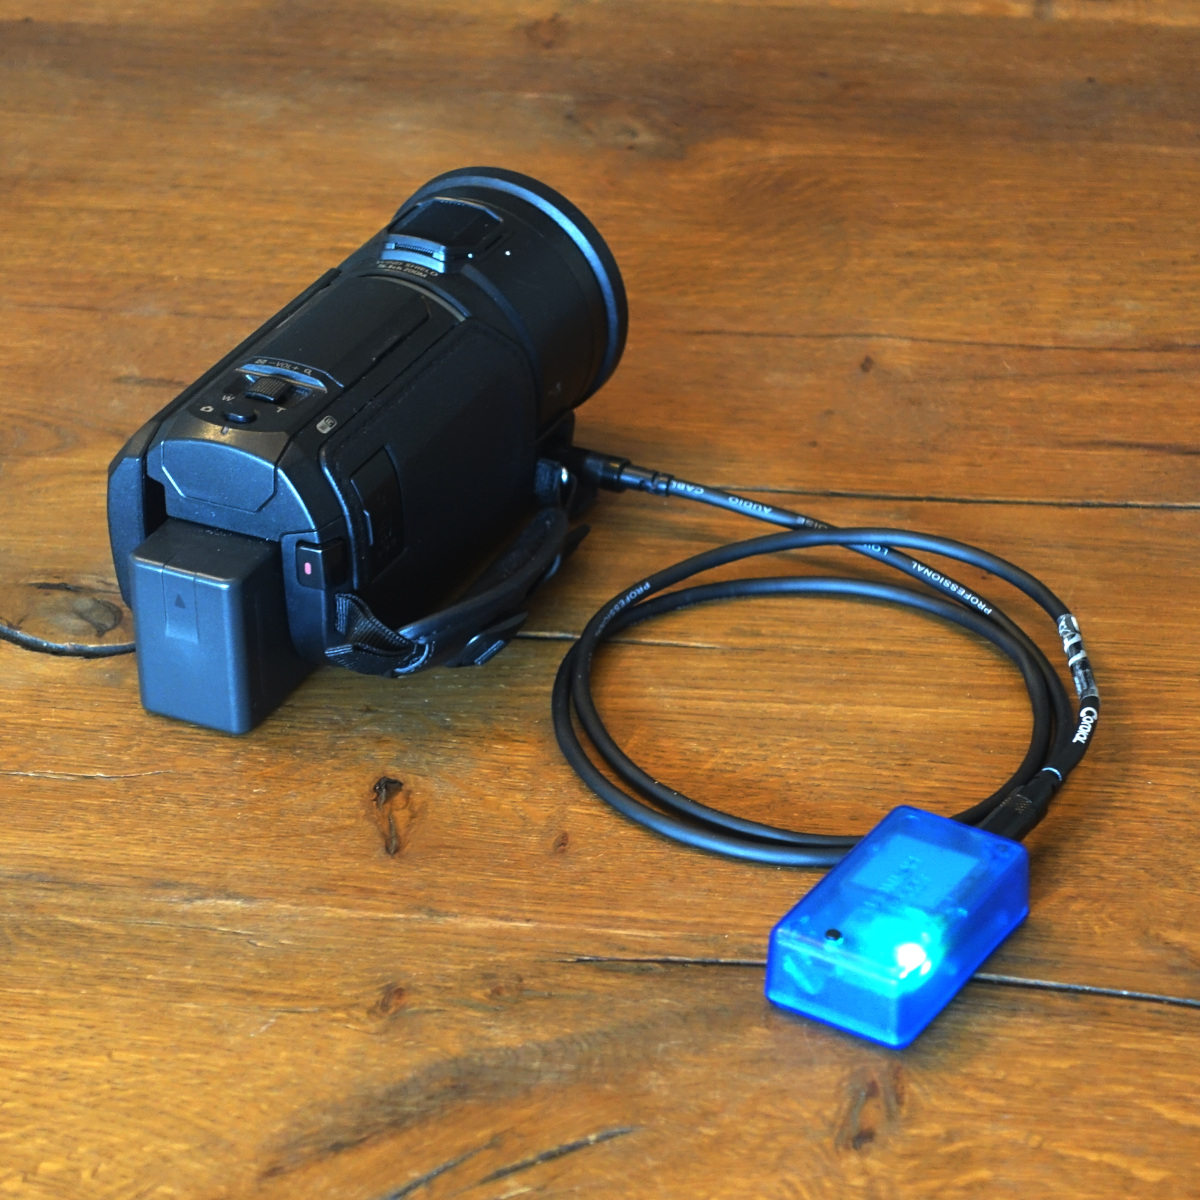 Our video sync unit connected to a standard handheld video camera.